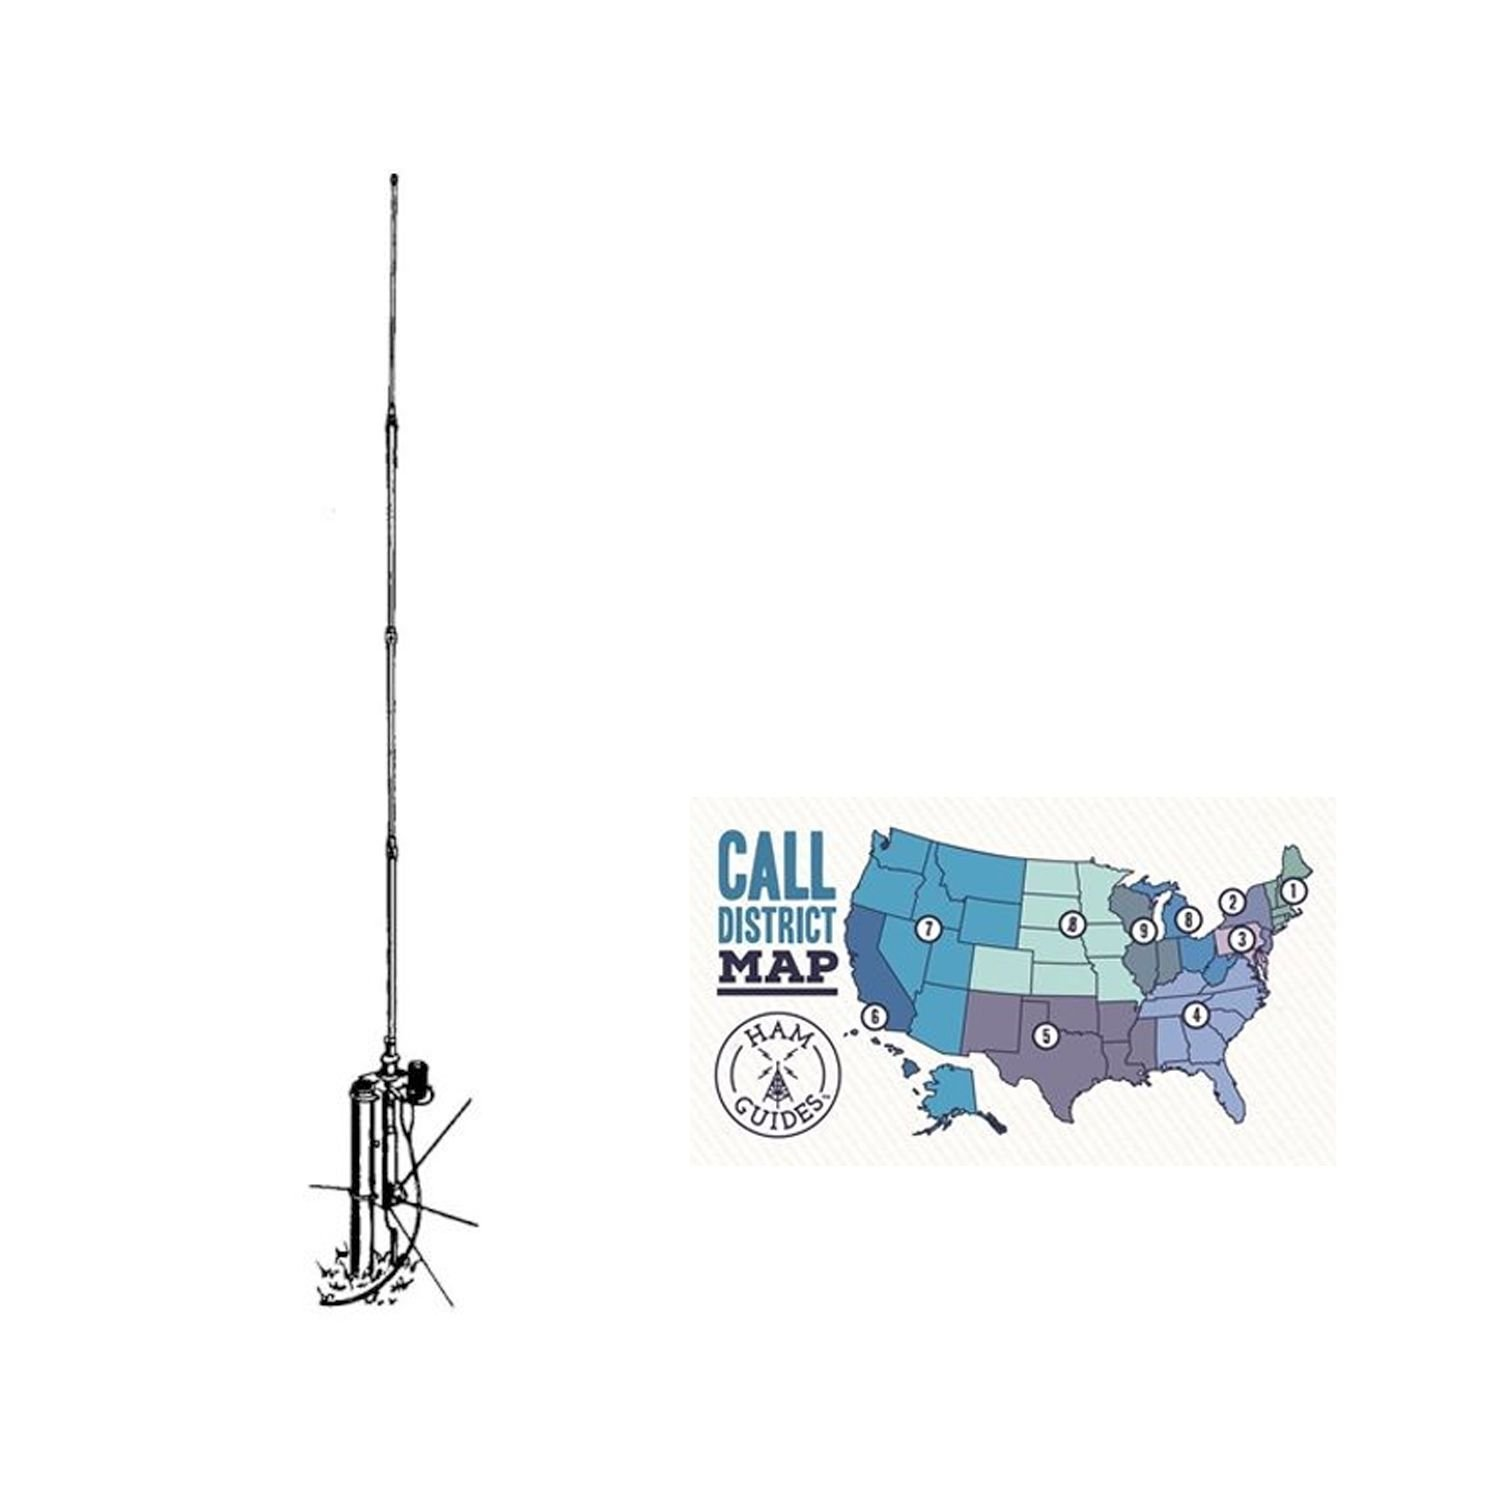 Bundle - 2 Items - Hy-Gain Vertical antenna, 10m-80m, 18ft and Ham Guides TM Pocket Reference Card